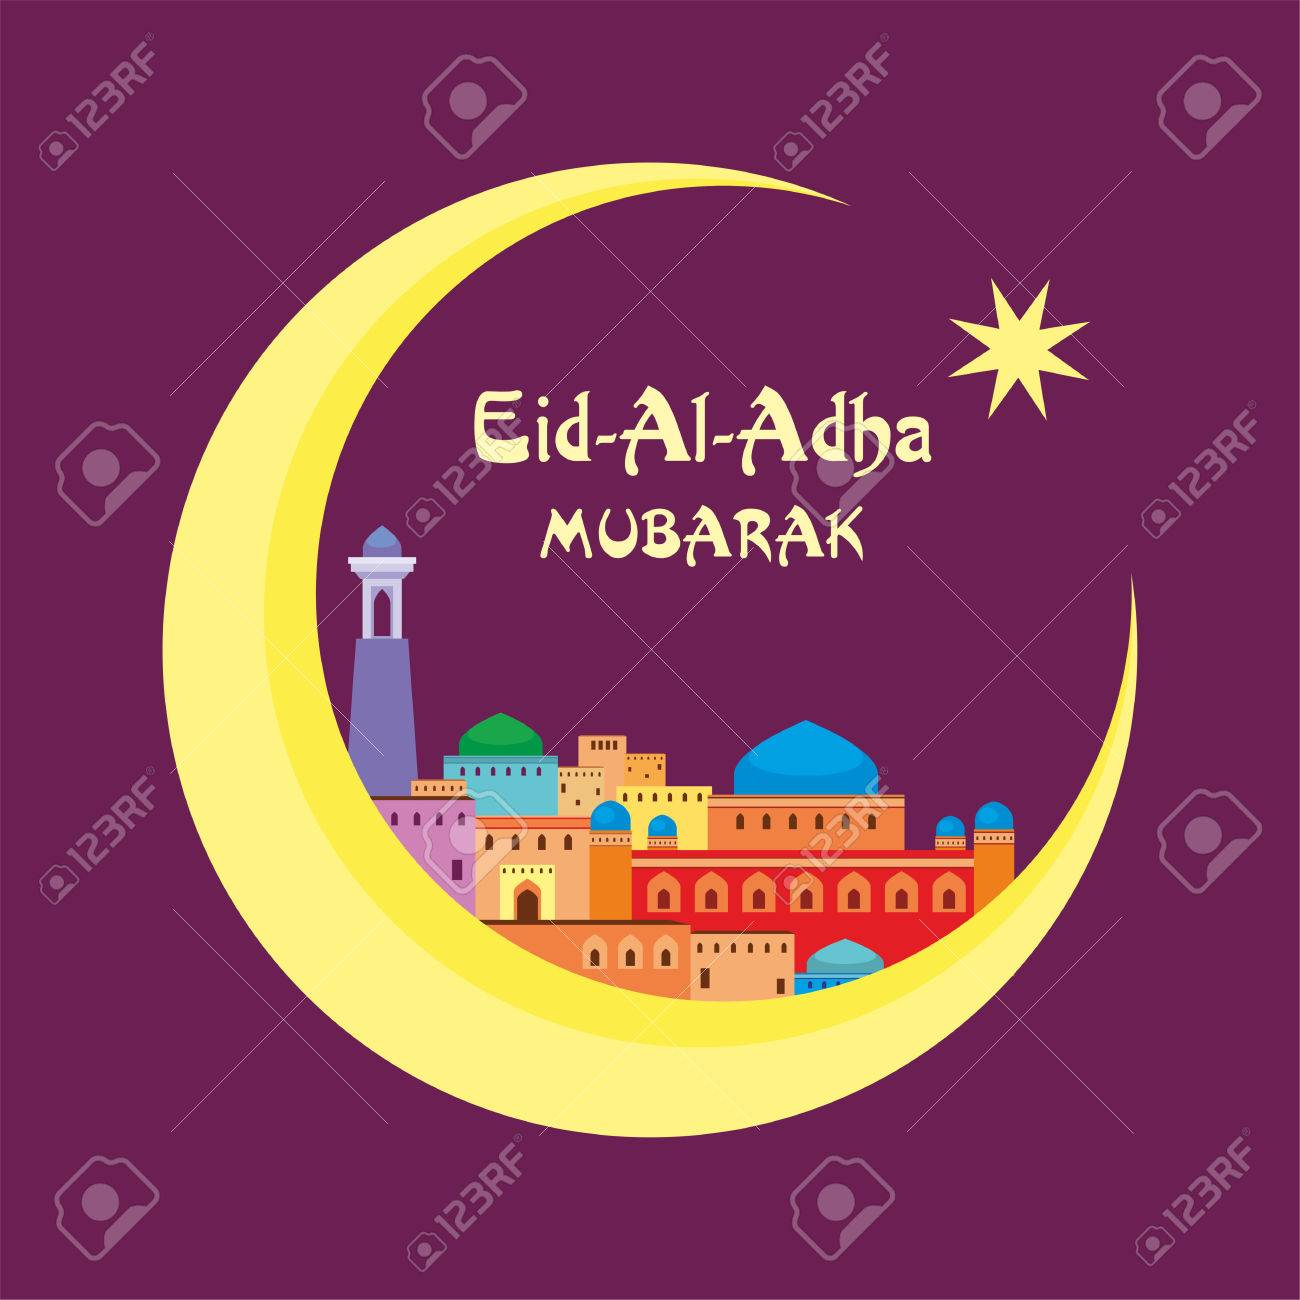 Eid Al Adha Greeting Card With The Image Of An Ancient Middle